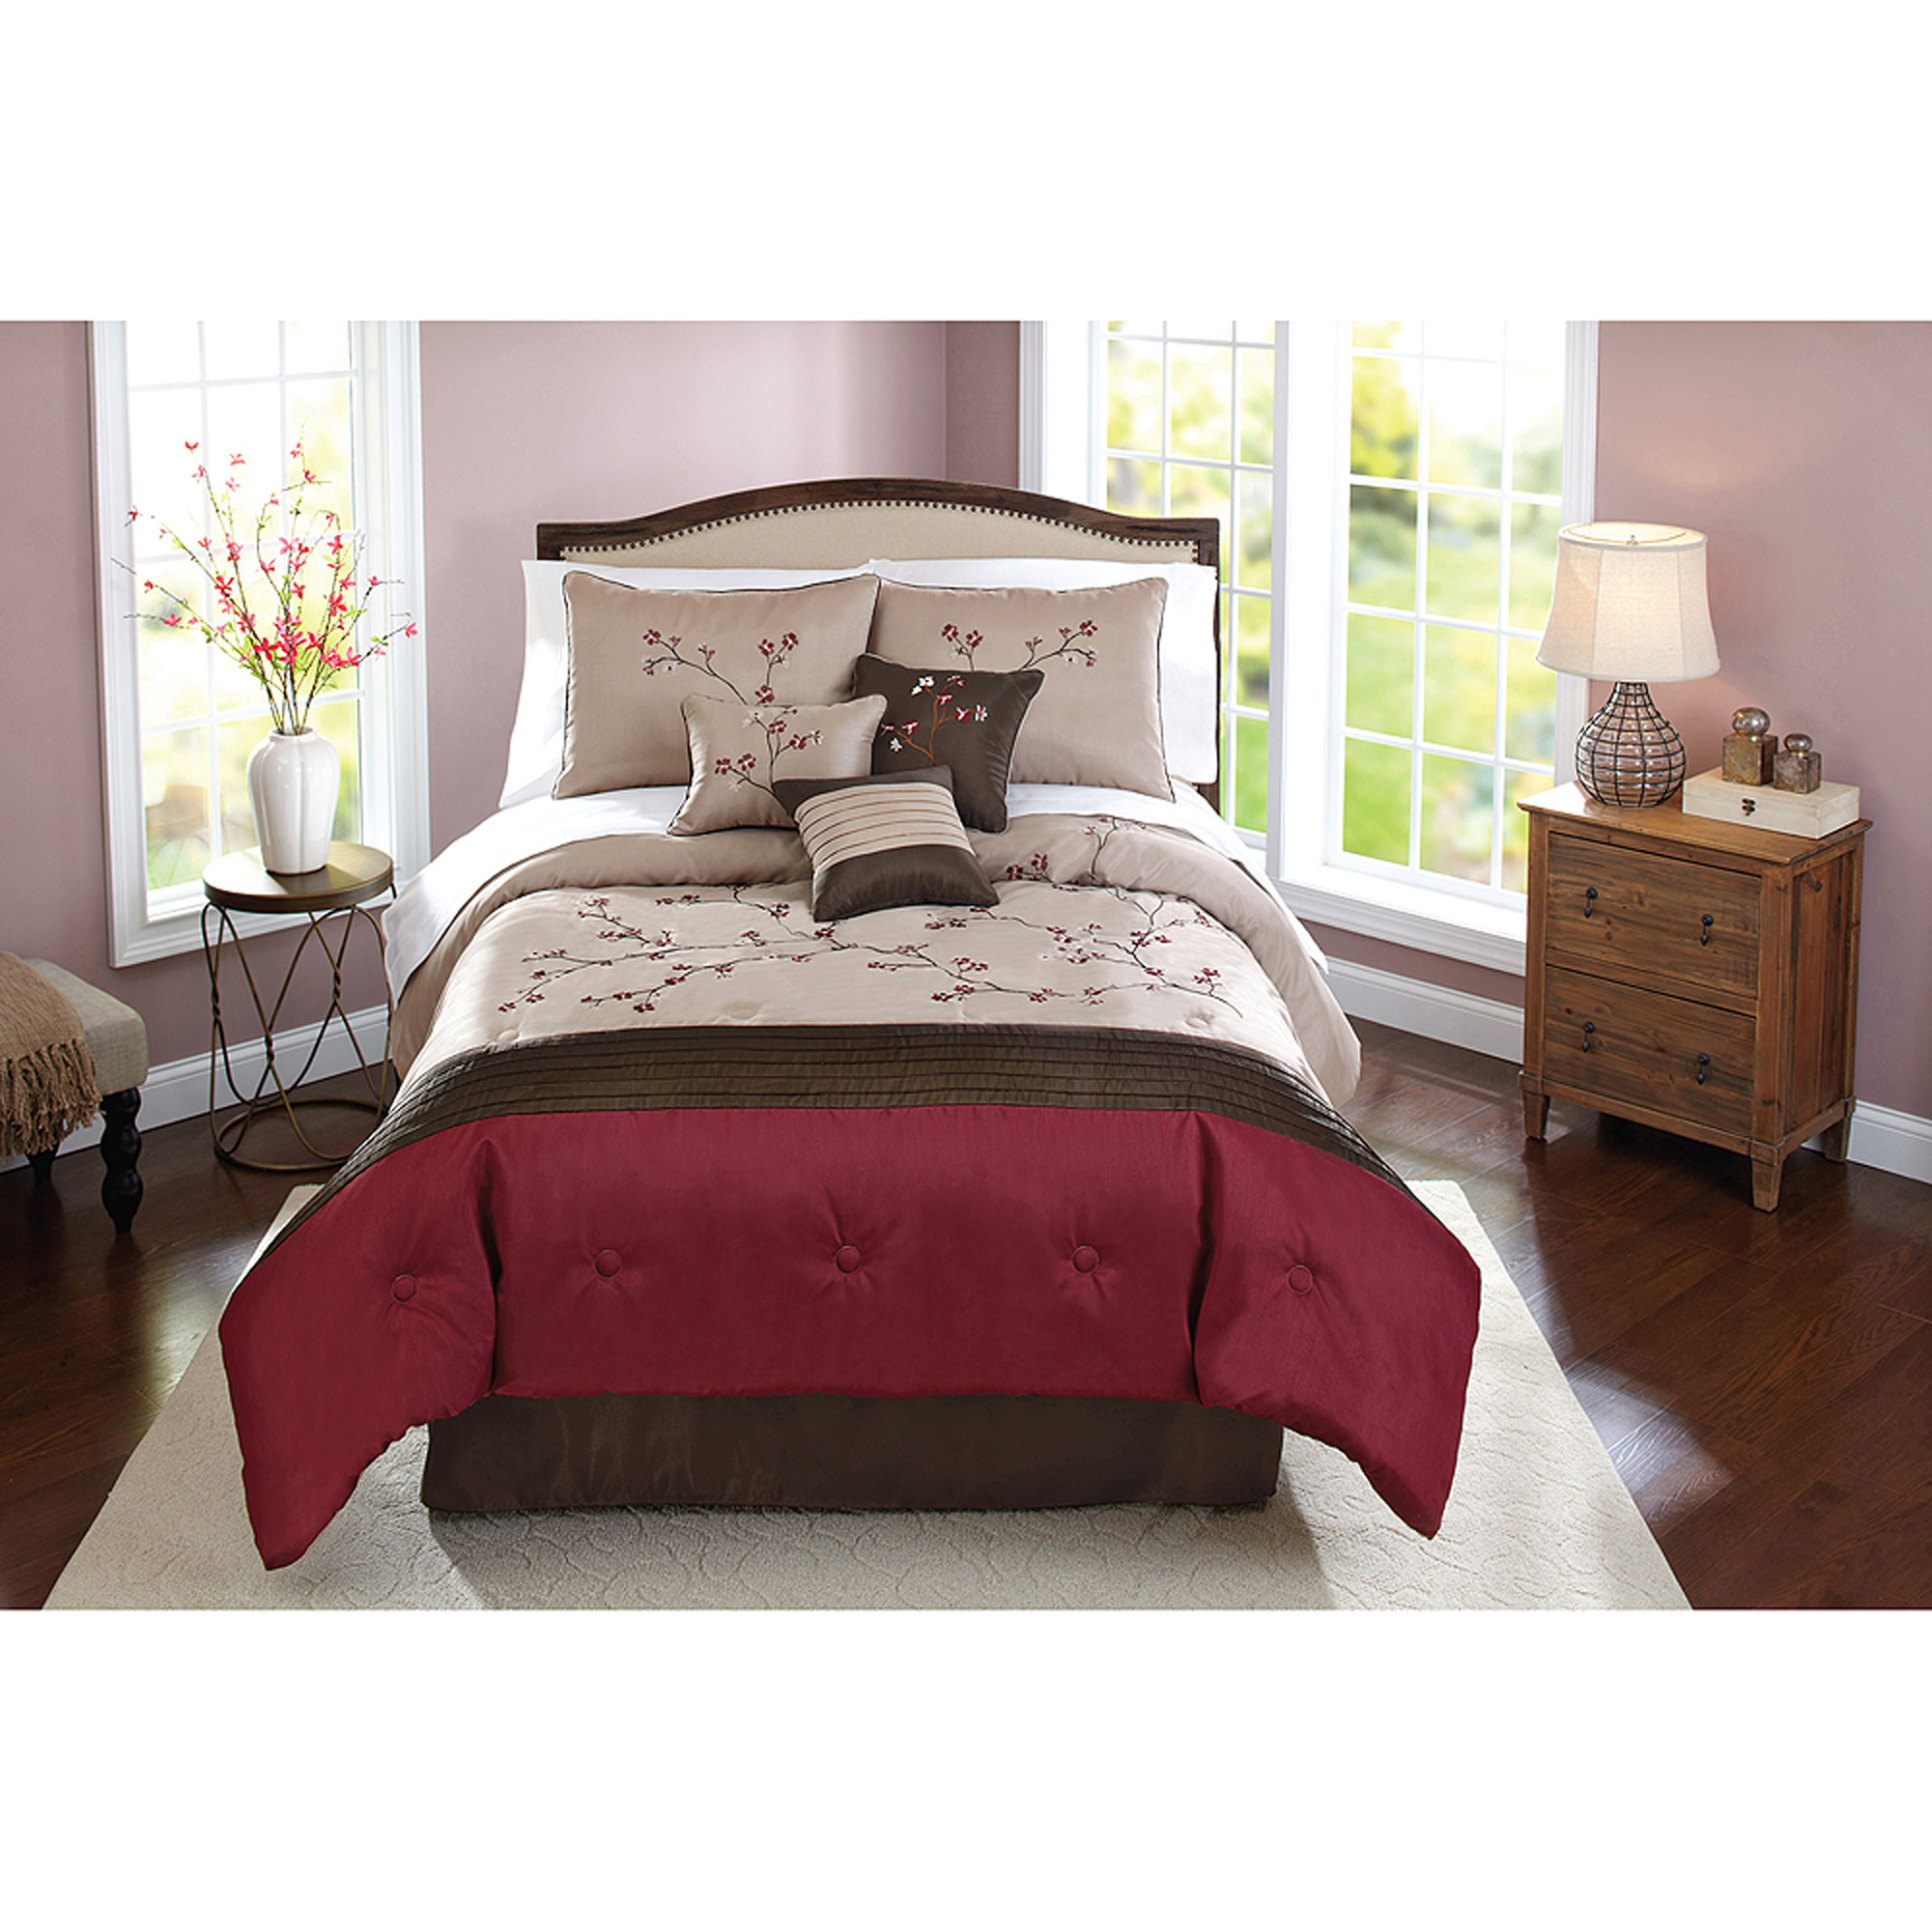 sets garden makeovers twilight bedroom quilt bedrooms better and decorating homes home magnificent makeover astonishing gardens small themed furniture